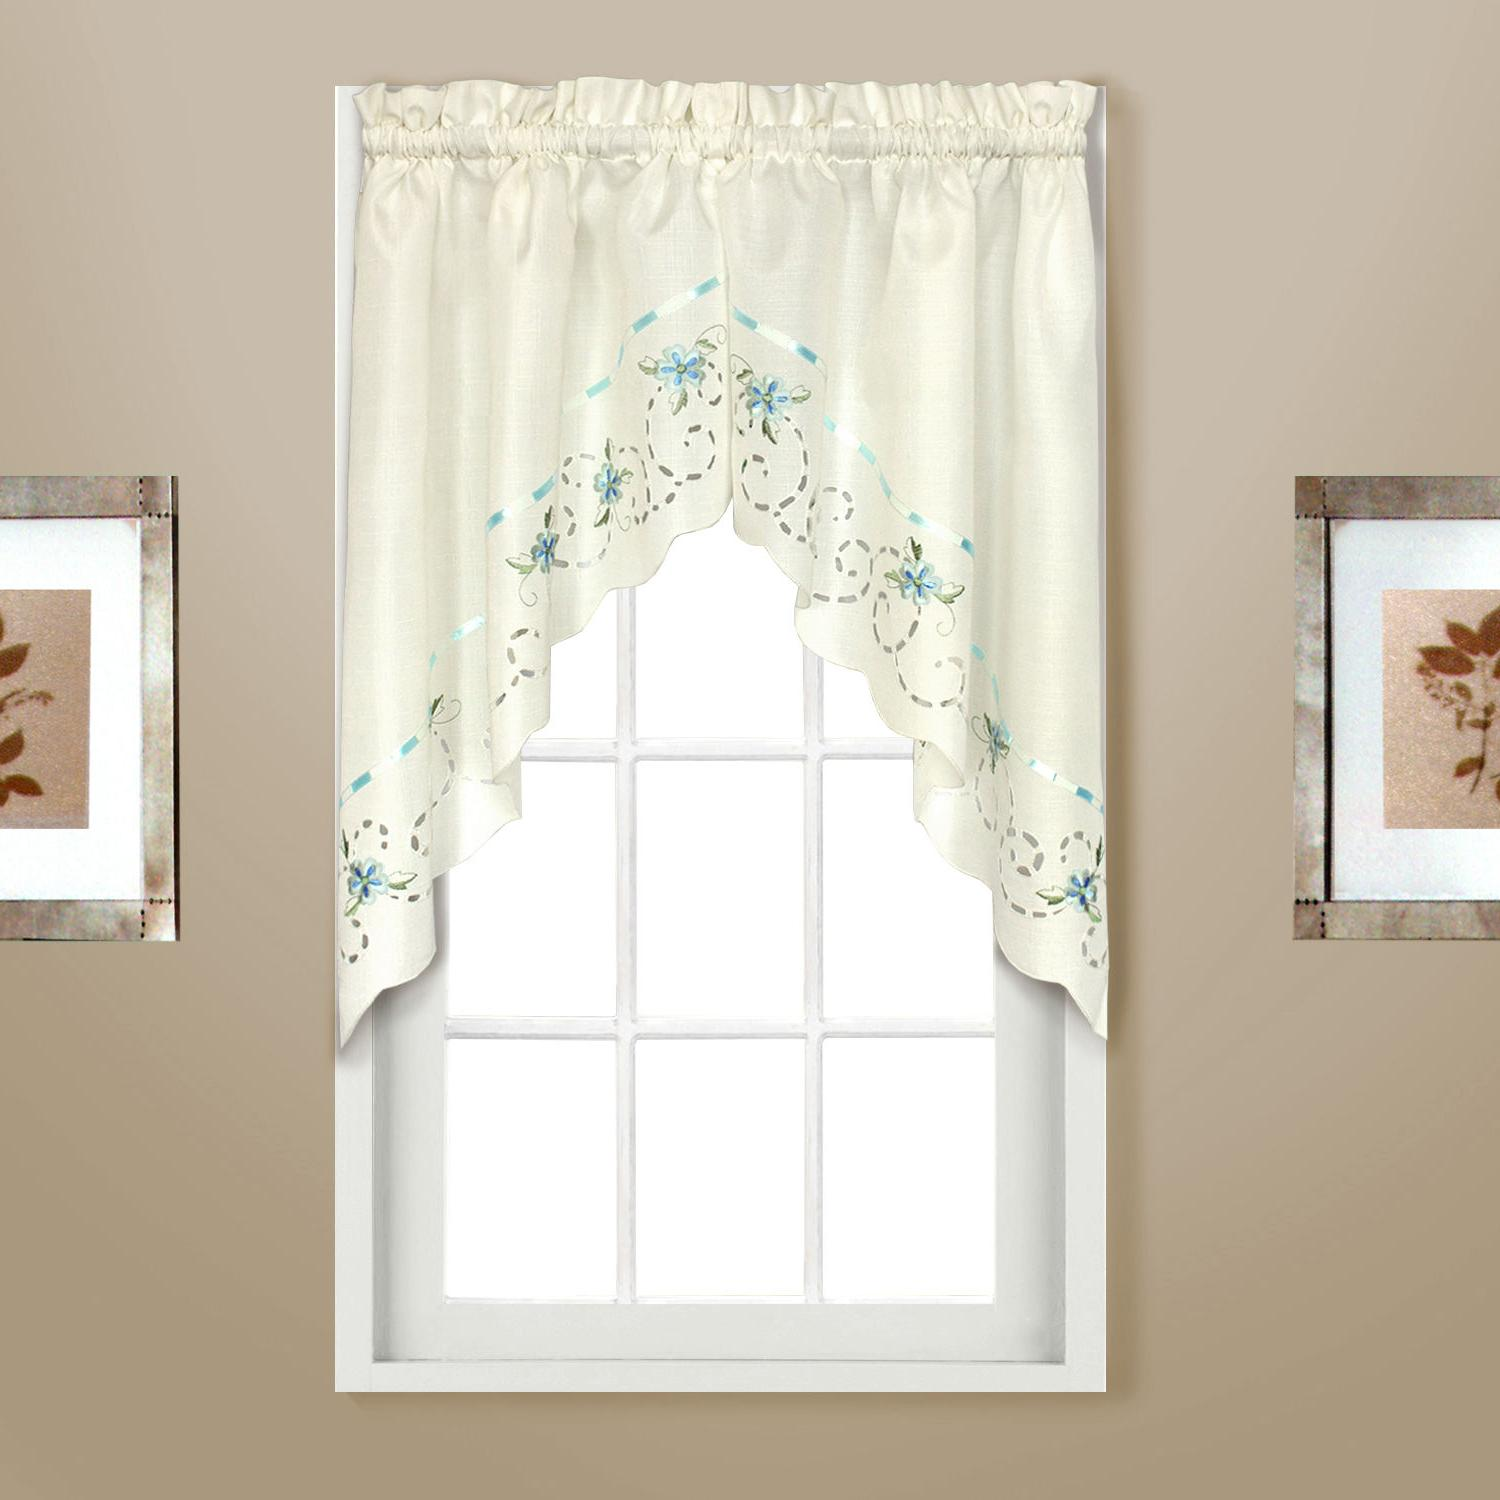 Rachael embroidered Kitchen - Swags, Valances !